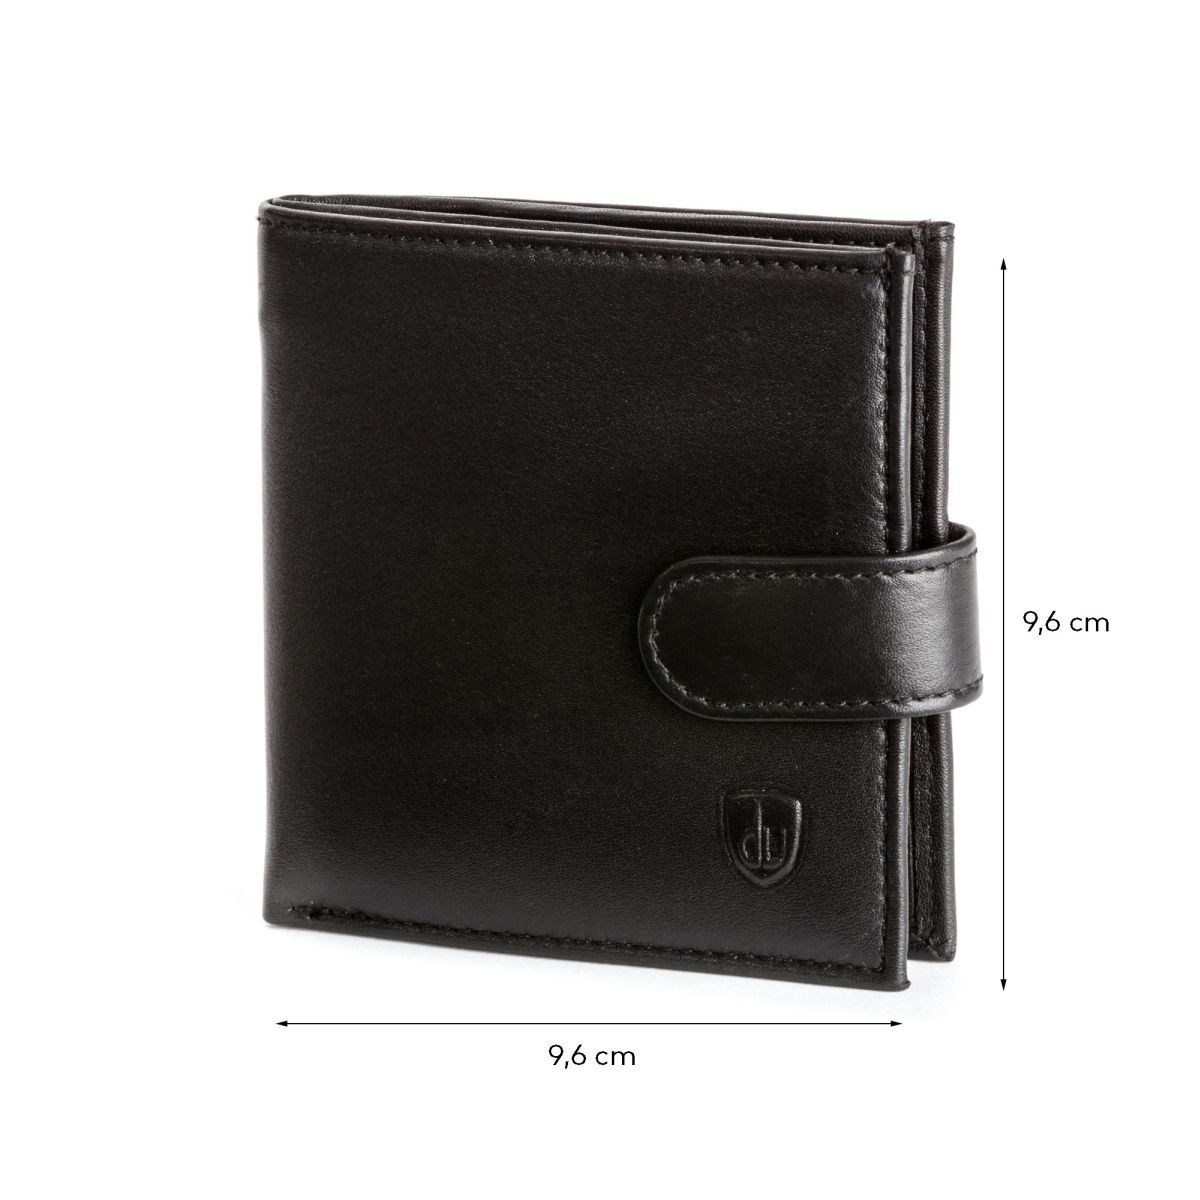 dv Men's Leather Wallet With Snap Closure - Black